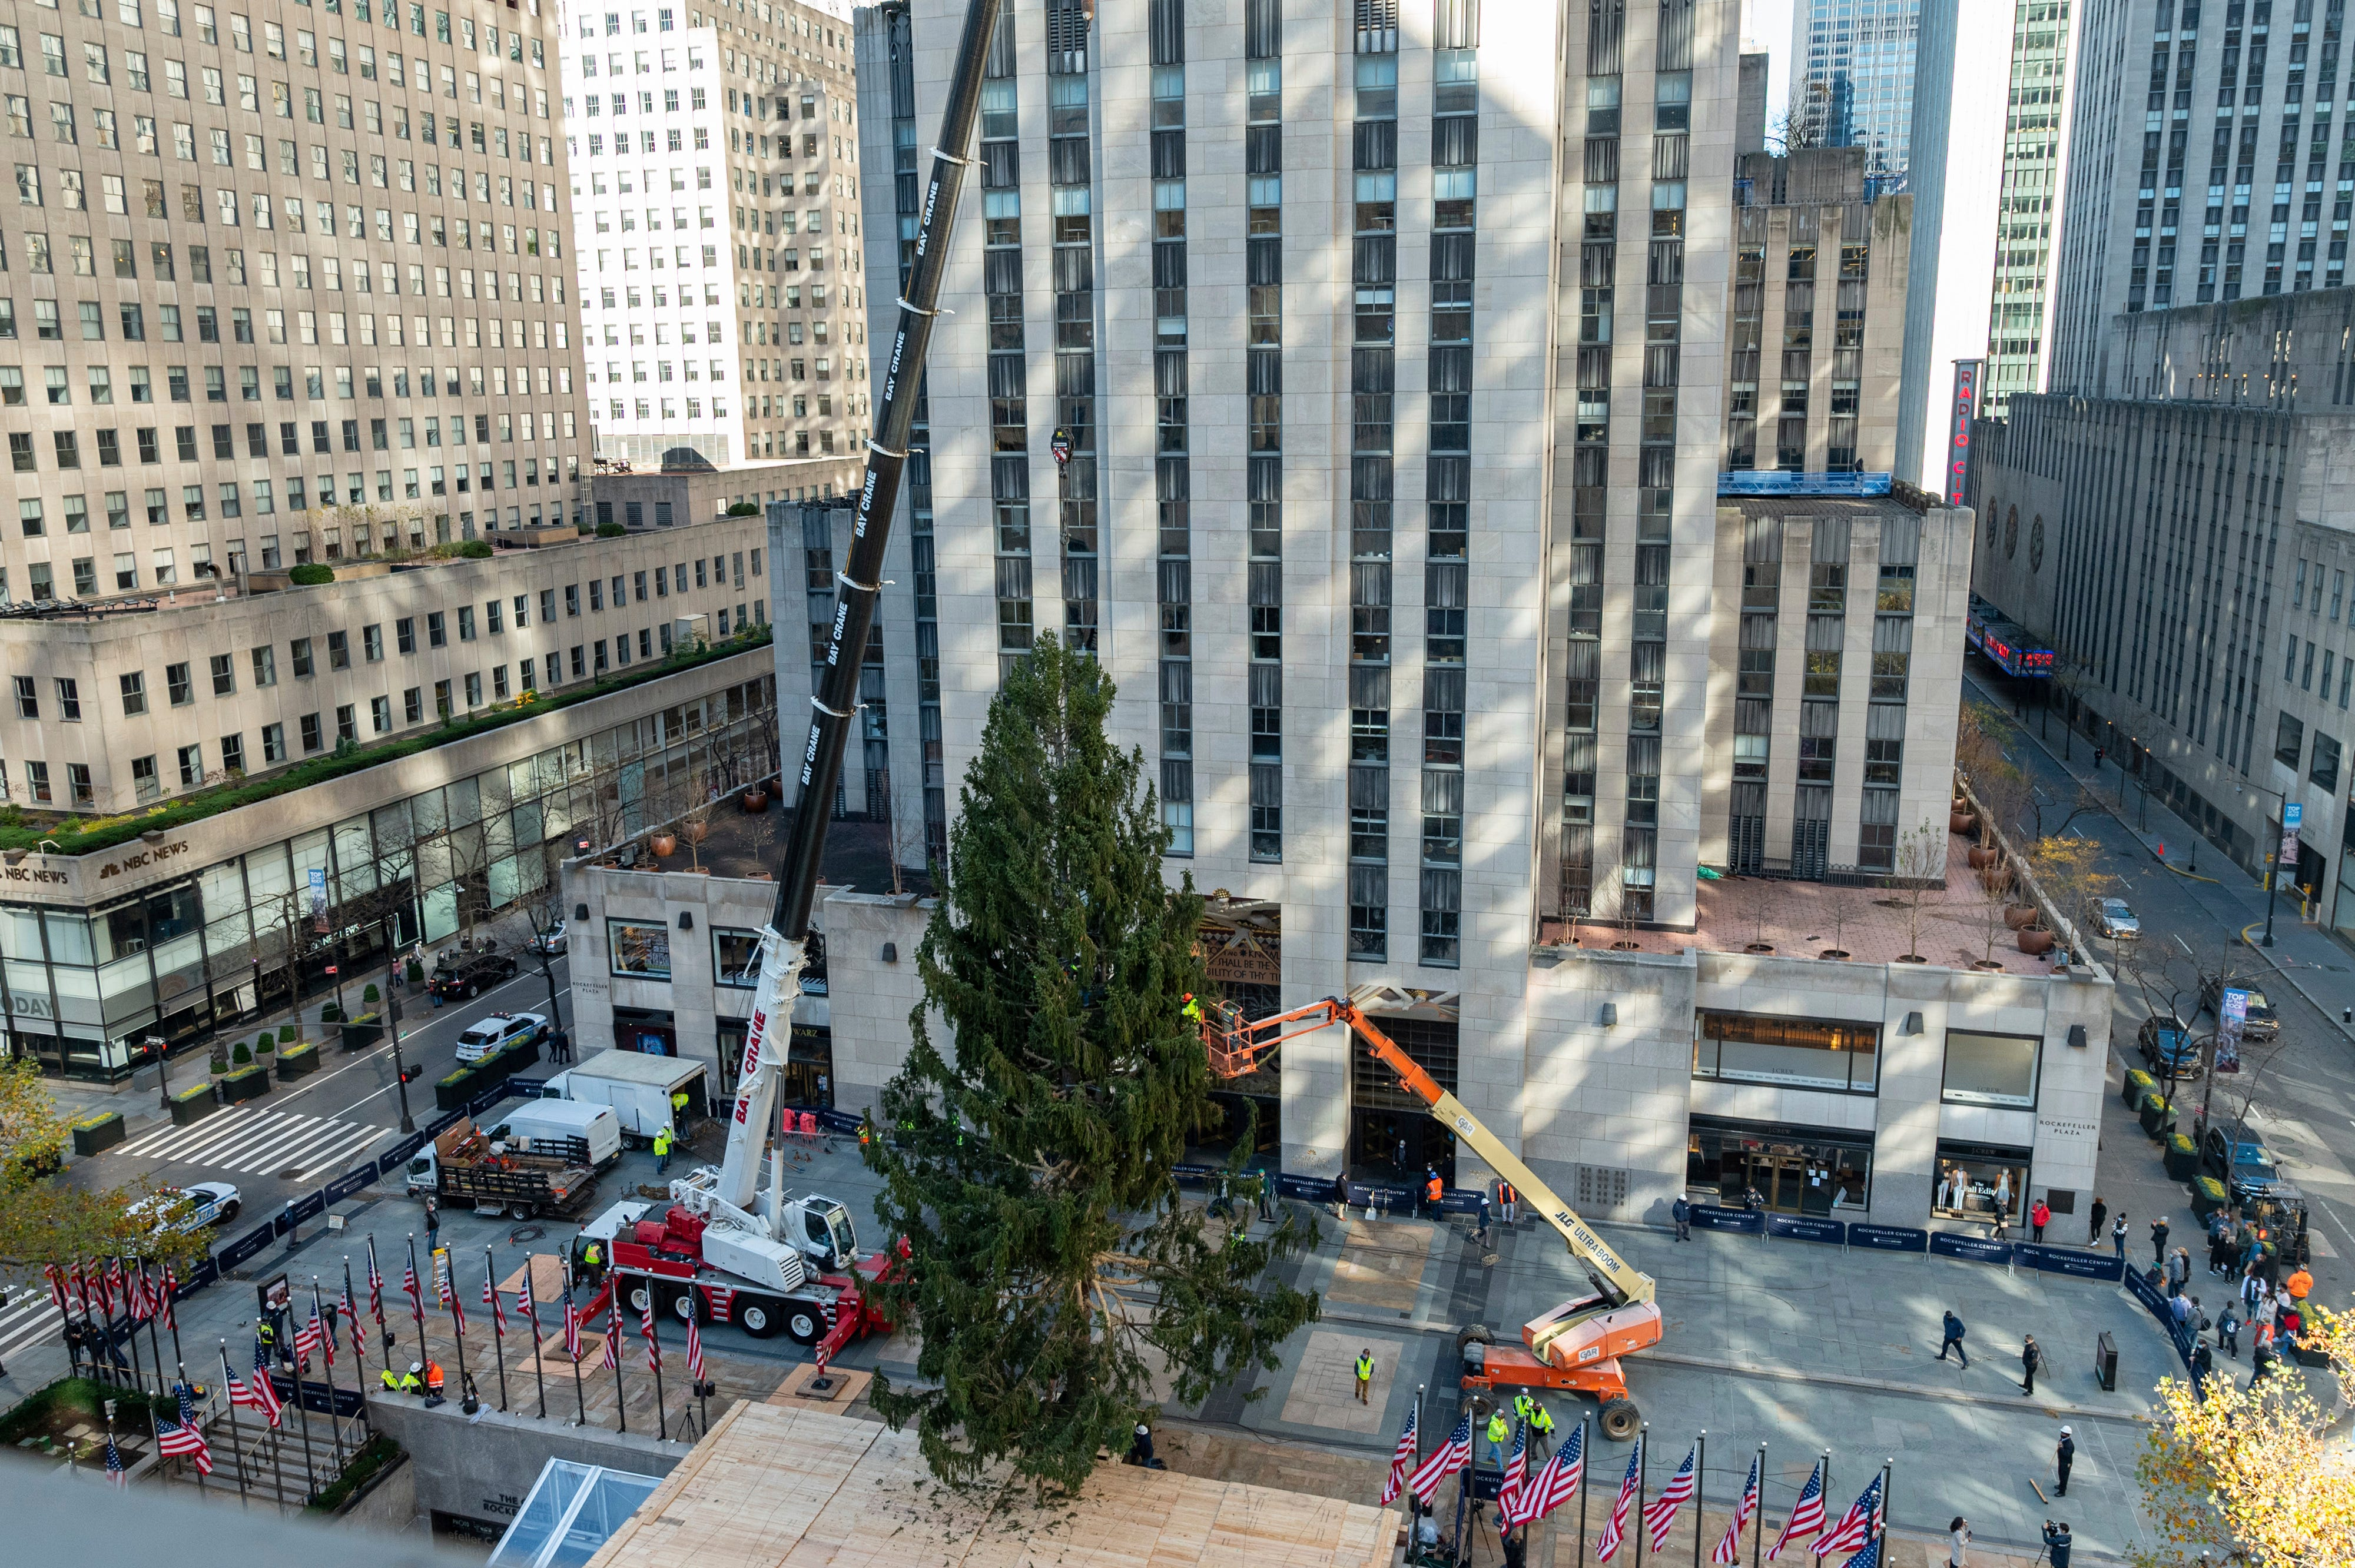 It's beginning to look a lot like Christmas! Rockefeller Christmas tree delivered to NYC